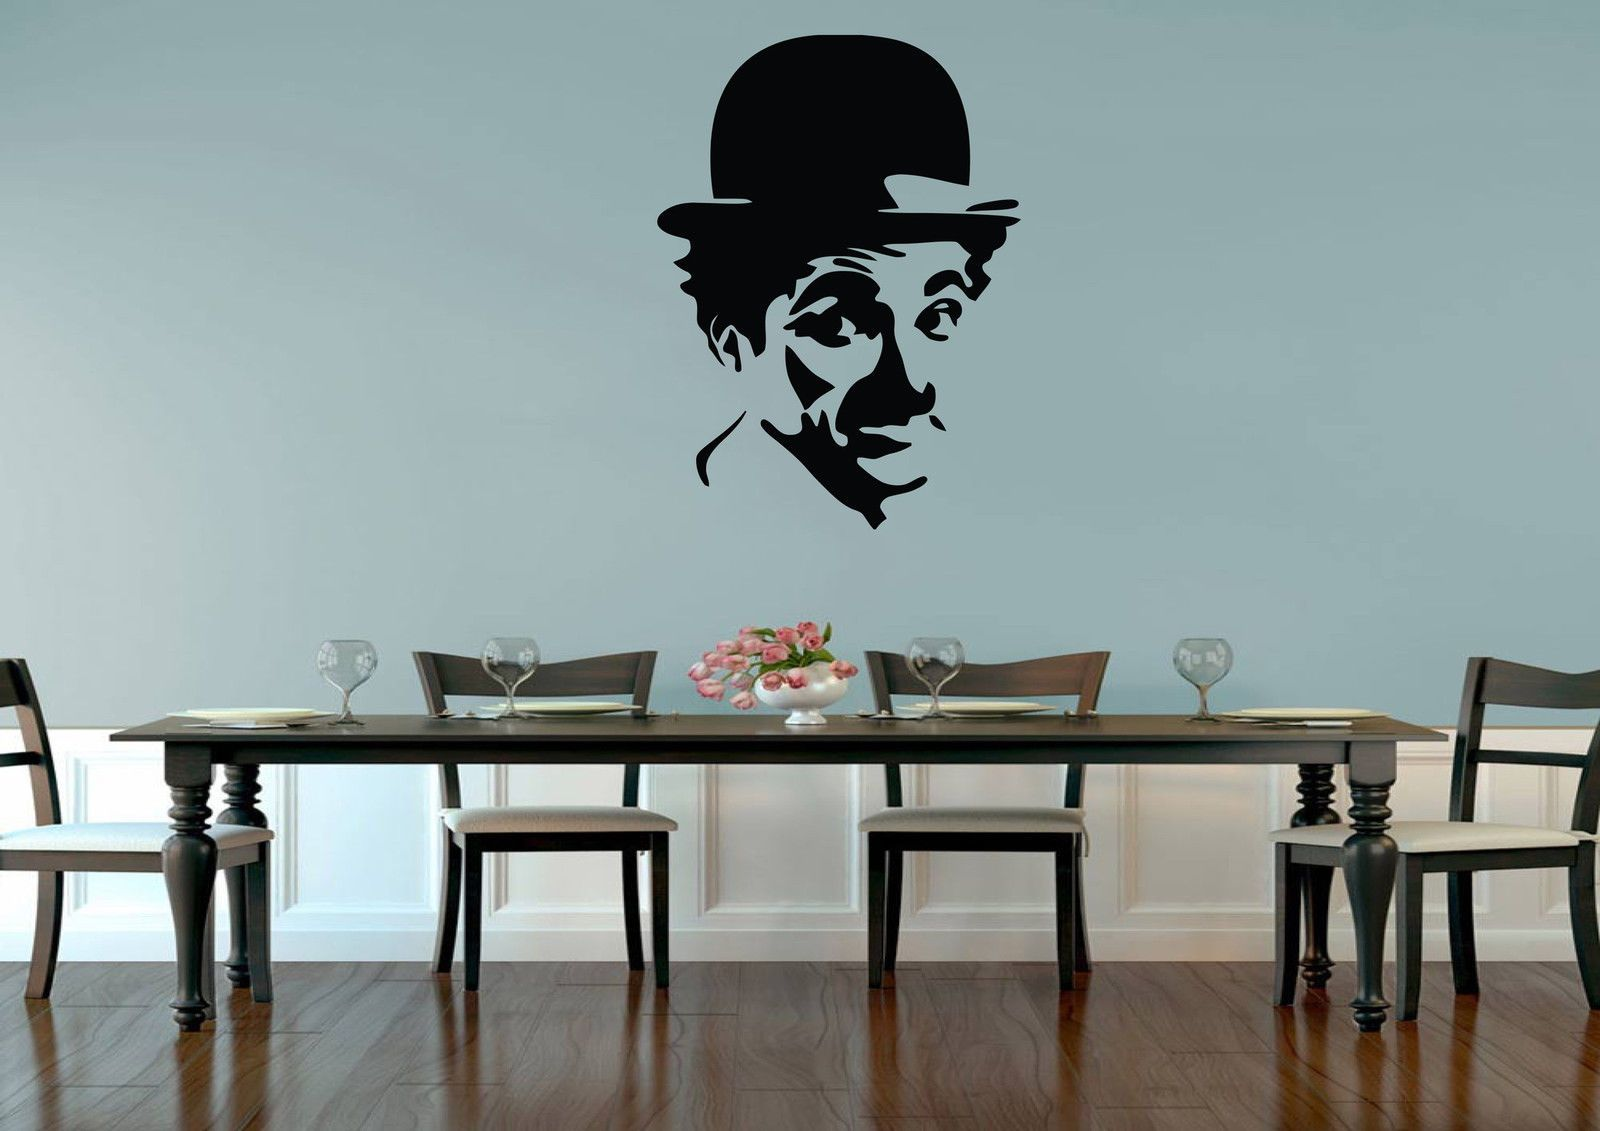 Scarface money power respect vinyl wall decal for home decore - Psycho Minimalist Movie Wall Art Sticker Iwallstickers Wall Sticker Pinterest Minimalist Wall Sticker And Walls